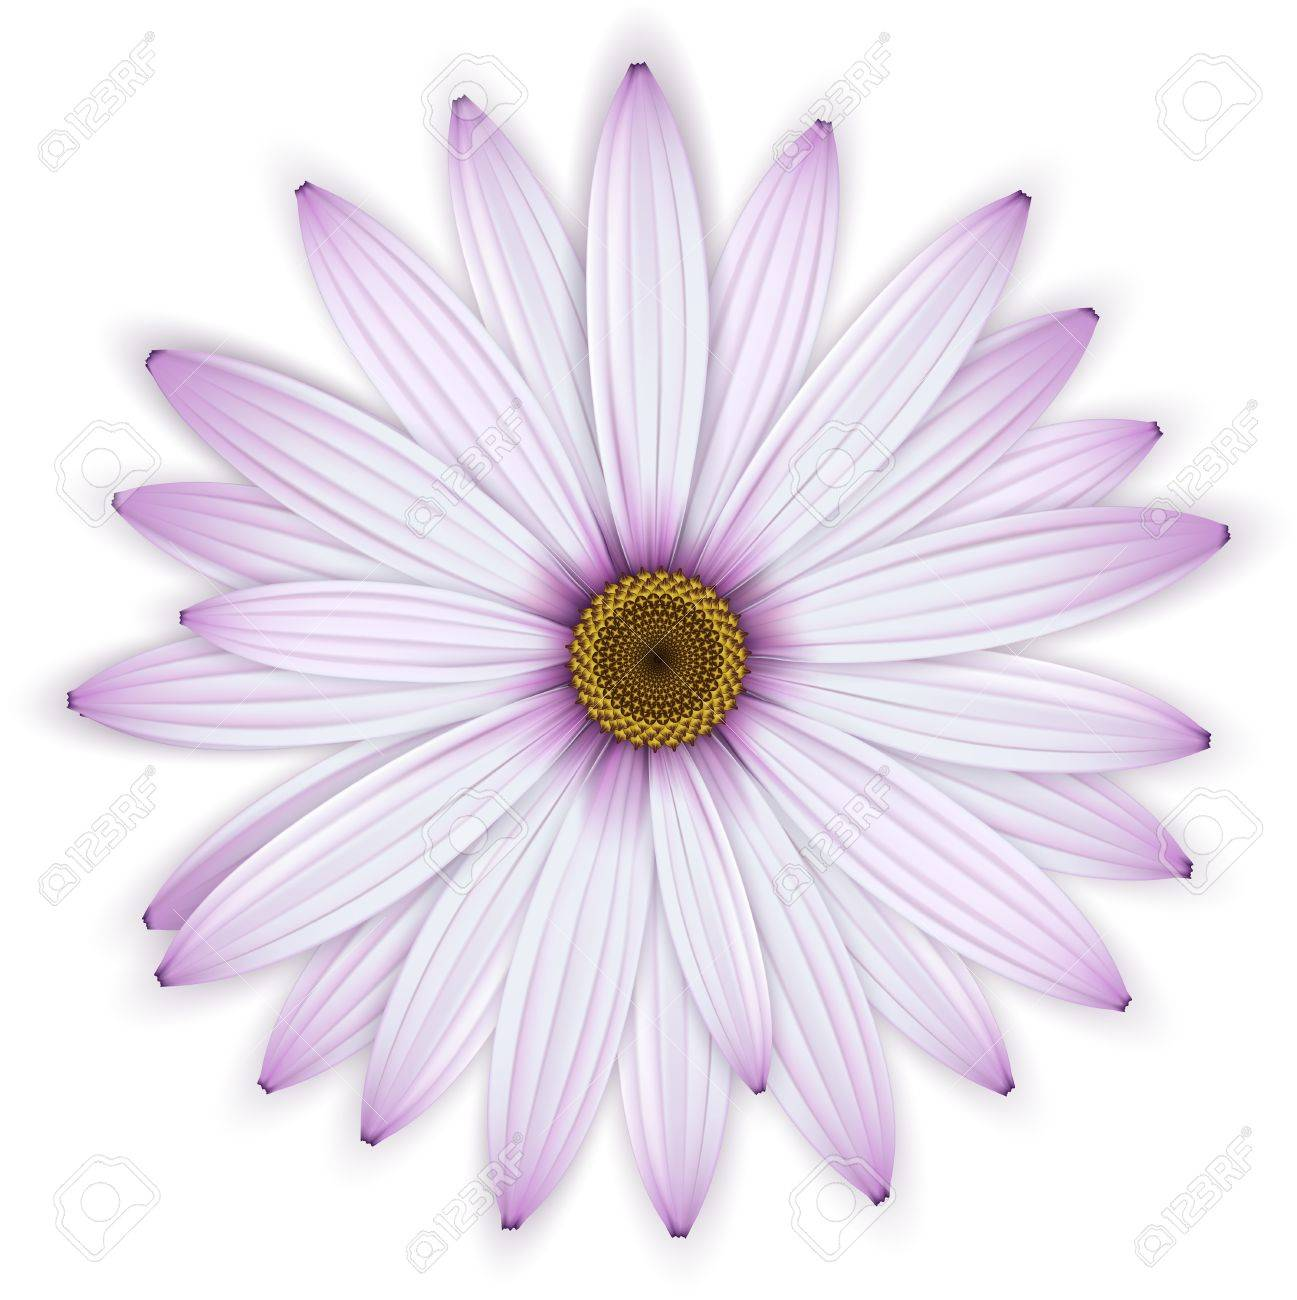 Purple Daisy Flower Isolated Over White Detailed Vector